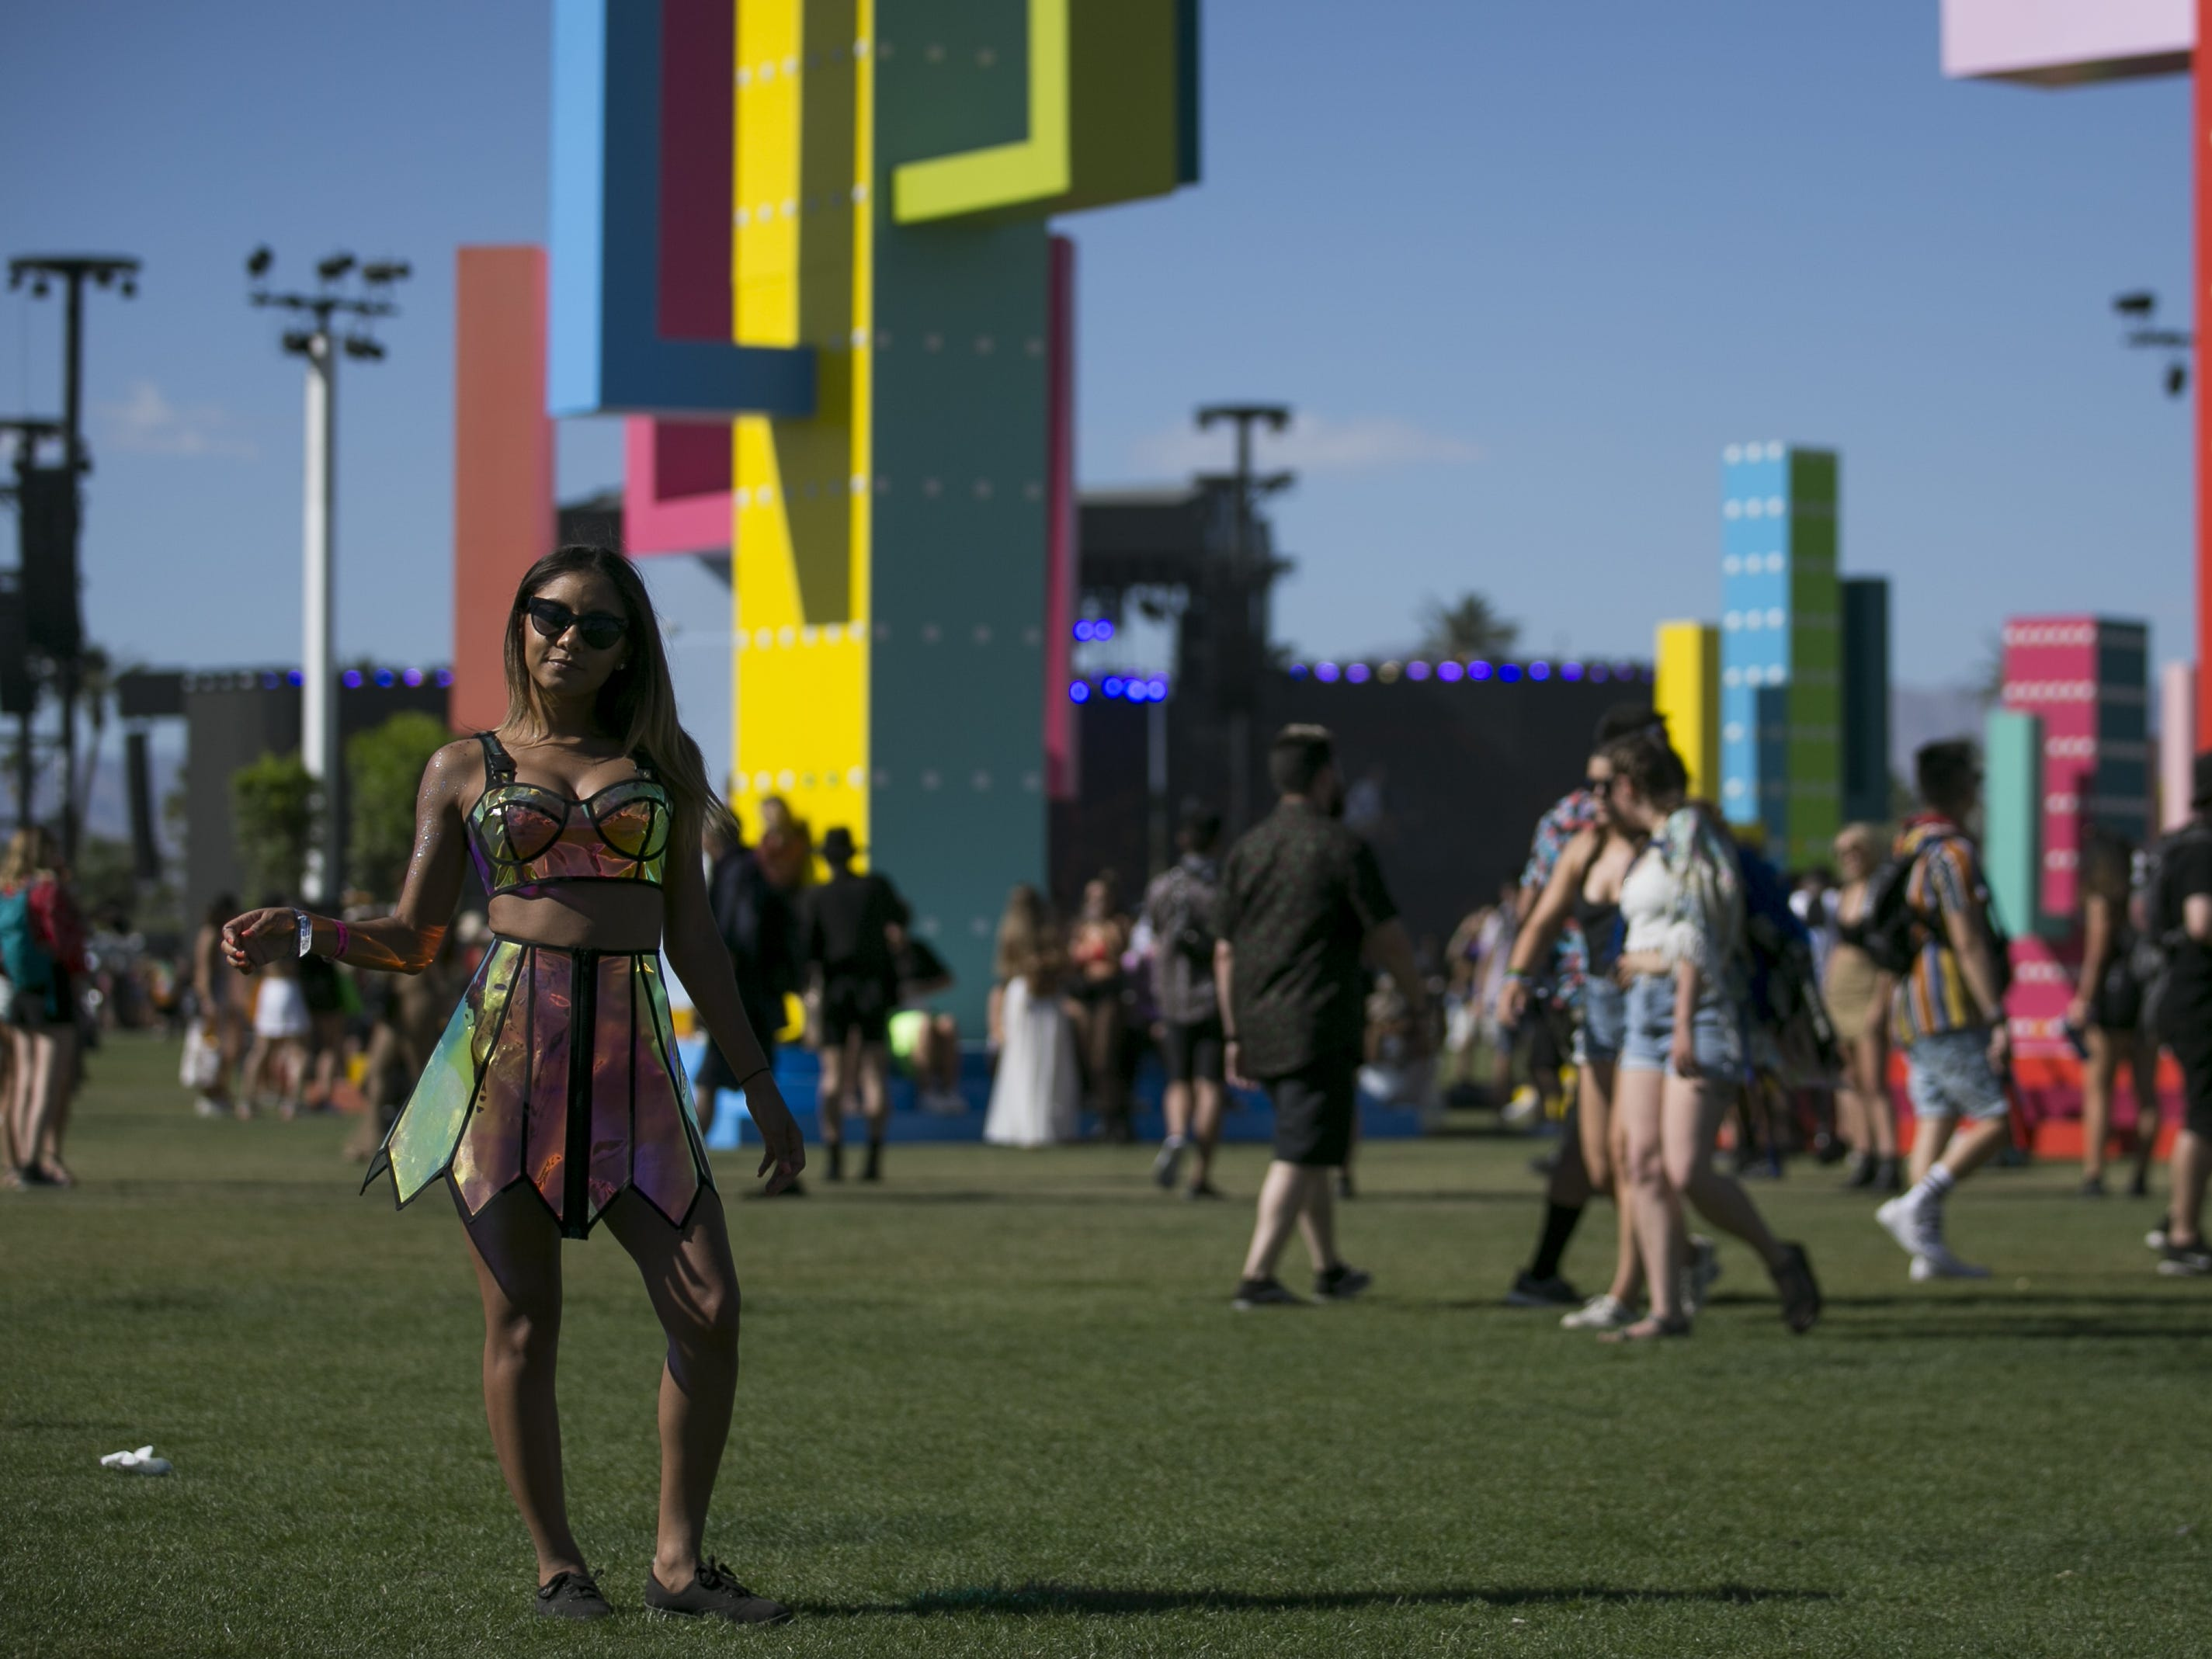 Mesly Casado, from Denver, poses in front of art installations at the Coachella Valley Music and Arts Festival in Indio, Calif. on April 12, 2019.